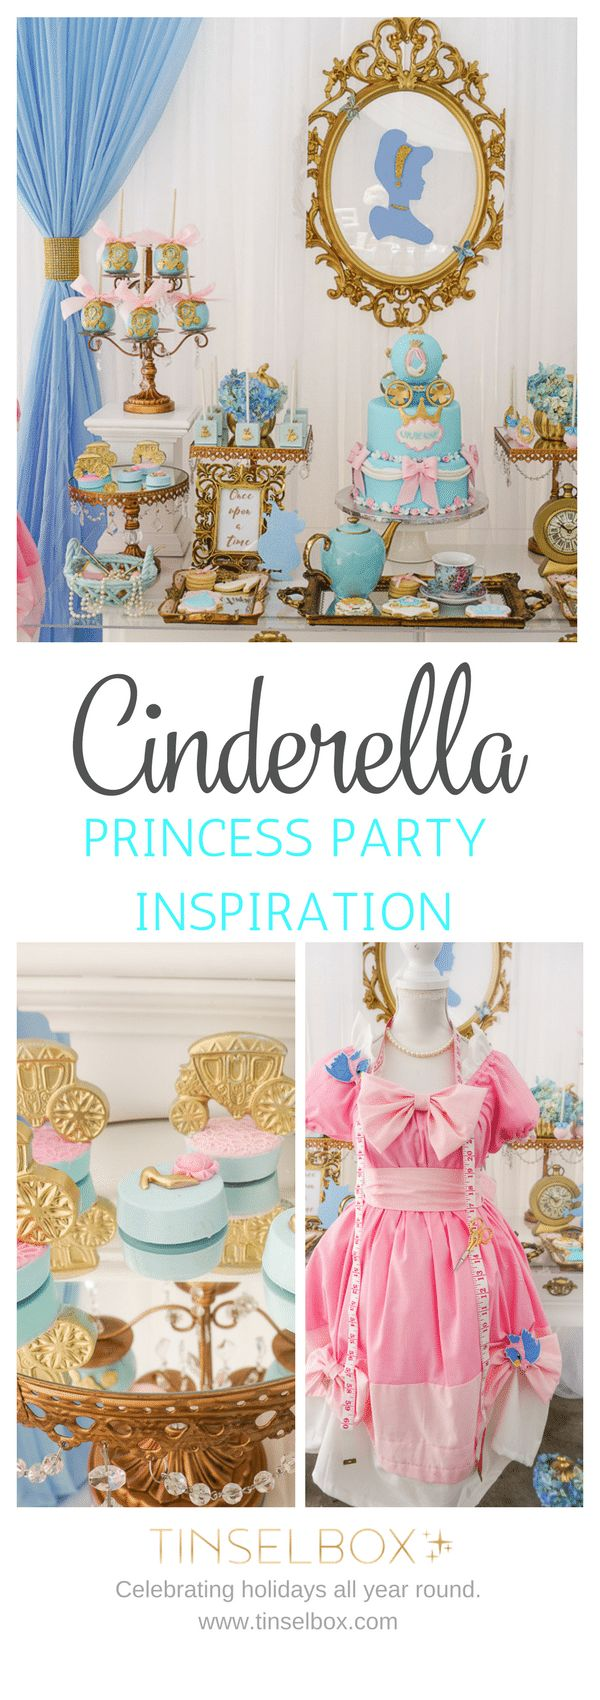 This Cinderella party is perfect for any princess. The details, the desserts, the cake and all the styling makes this party so unique.